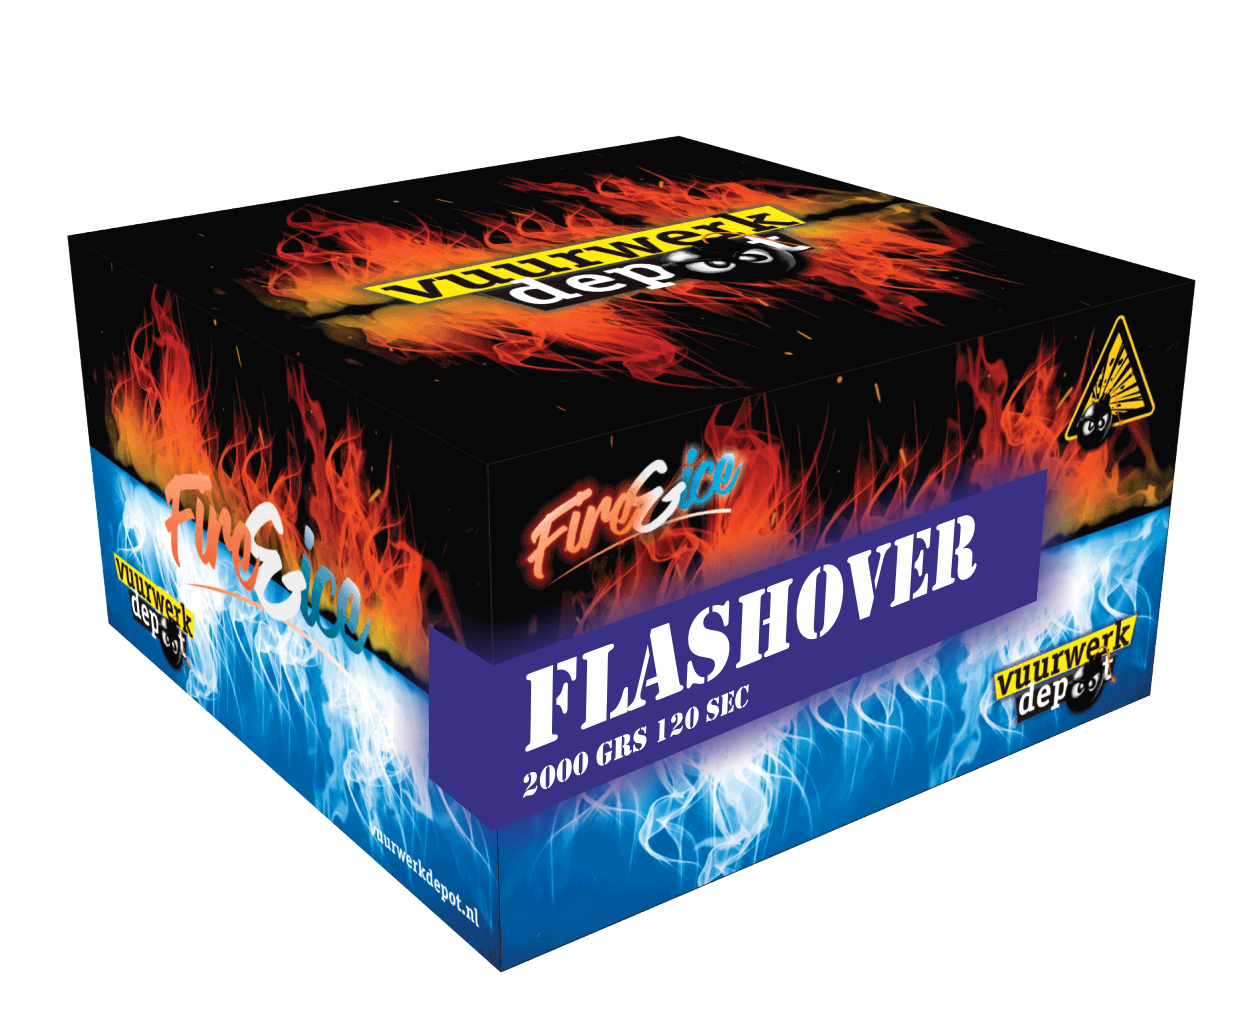 Flashover [Fire&Ice collection]